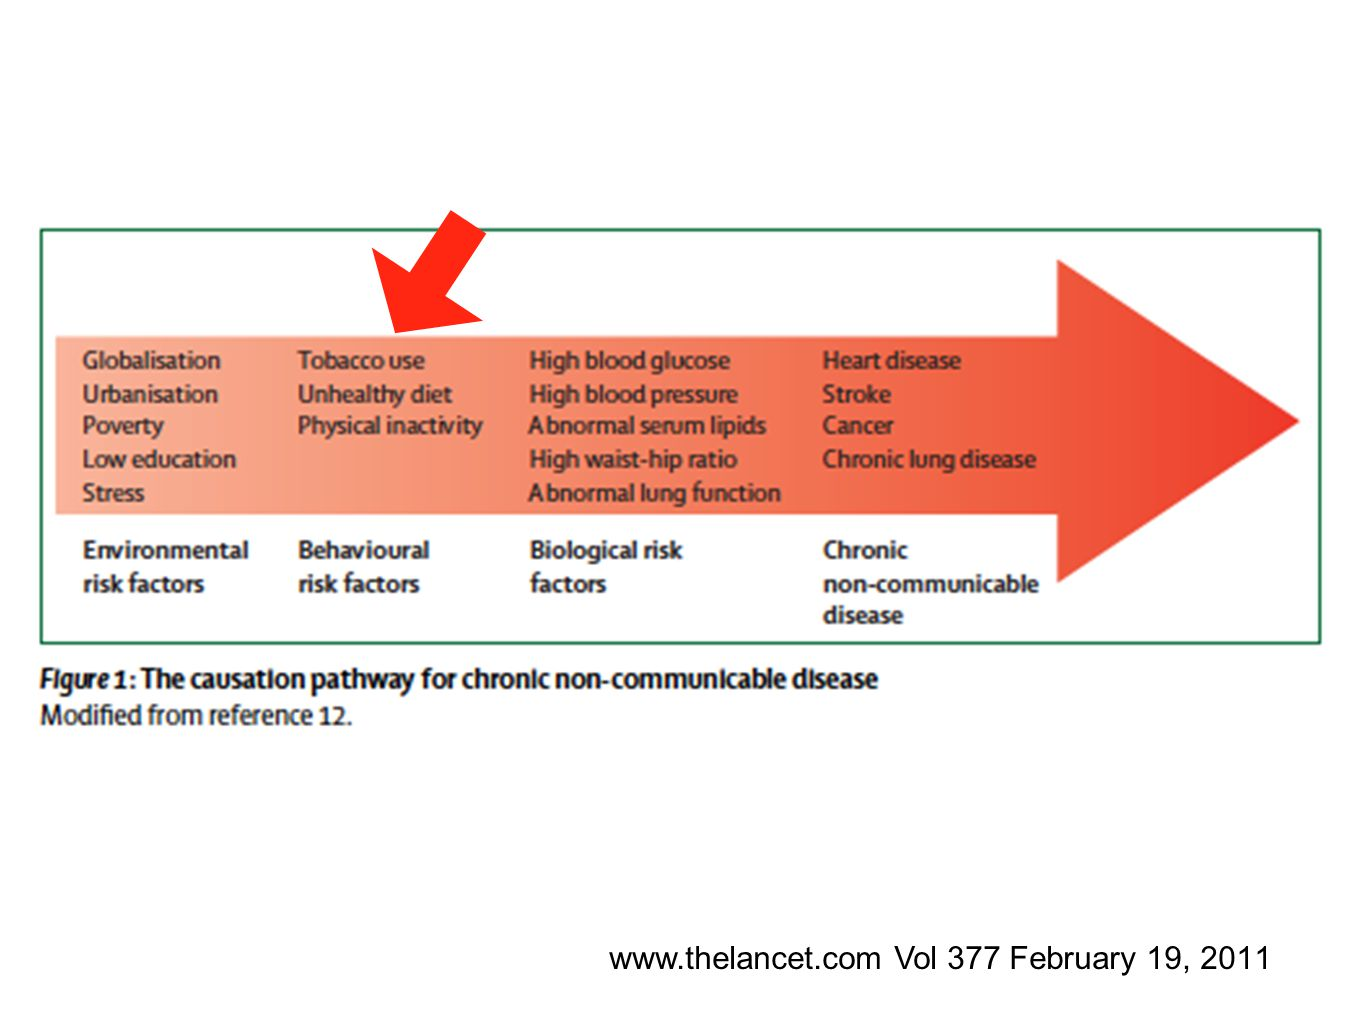 www.thelancet.com Vol 377 February 19, 2011